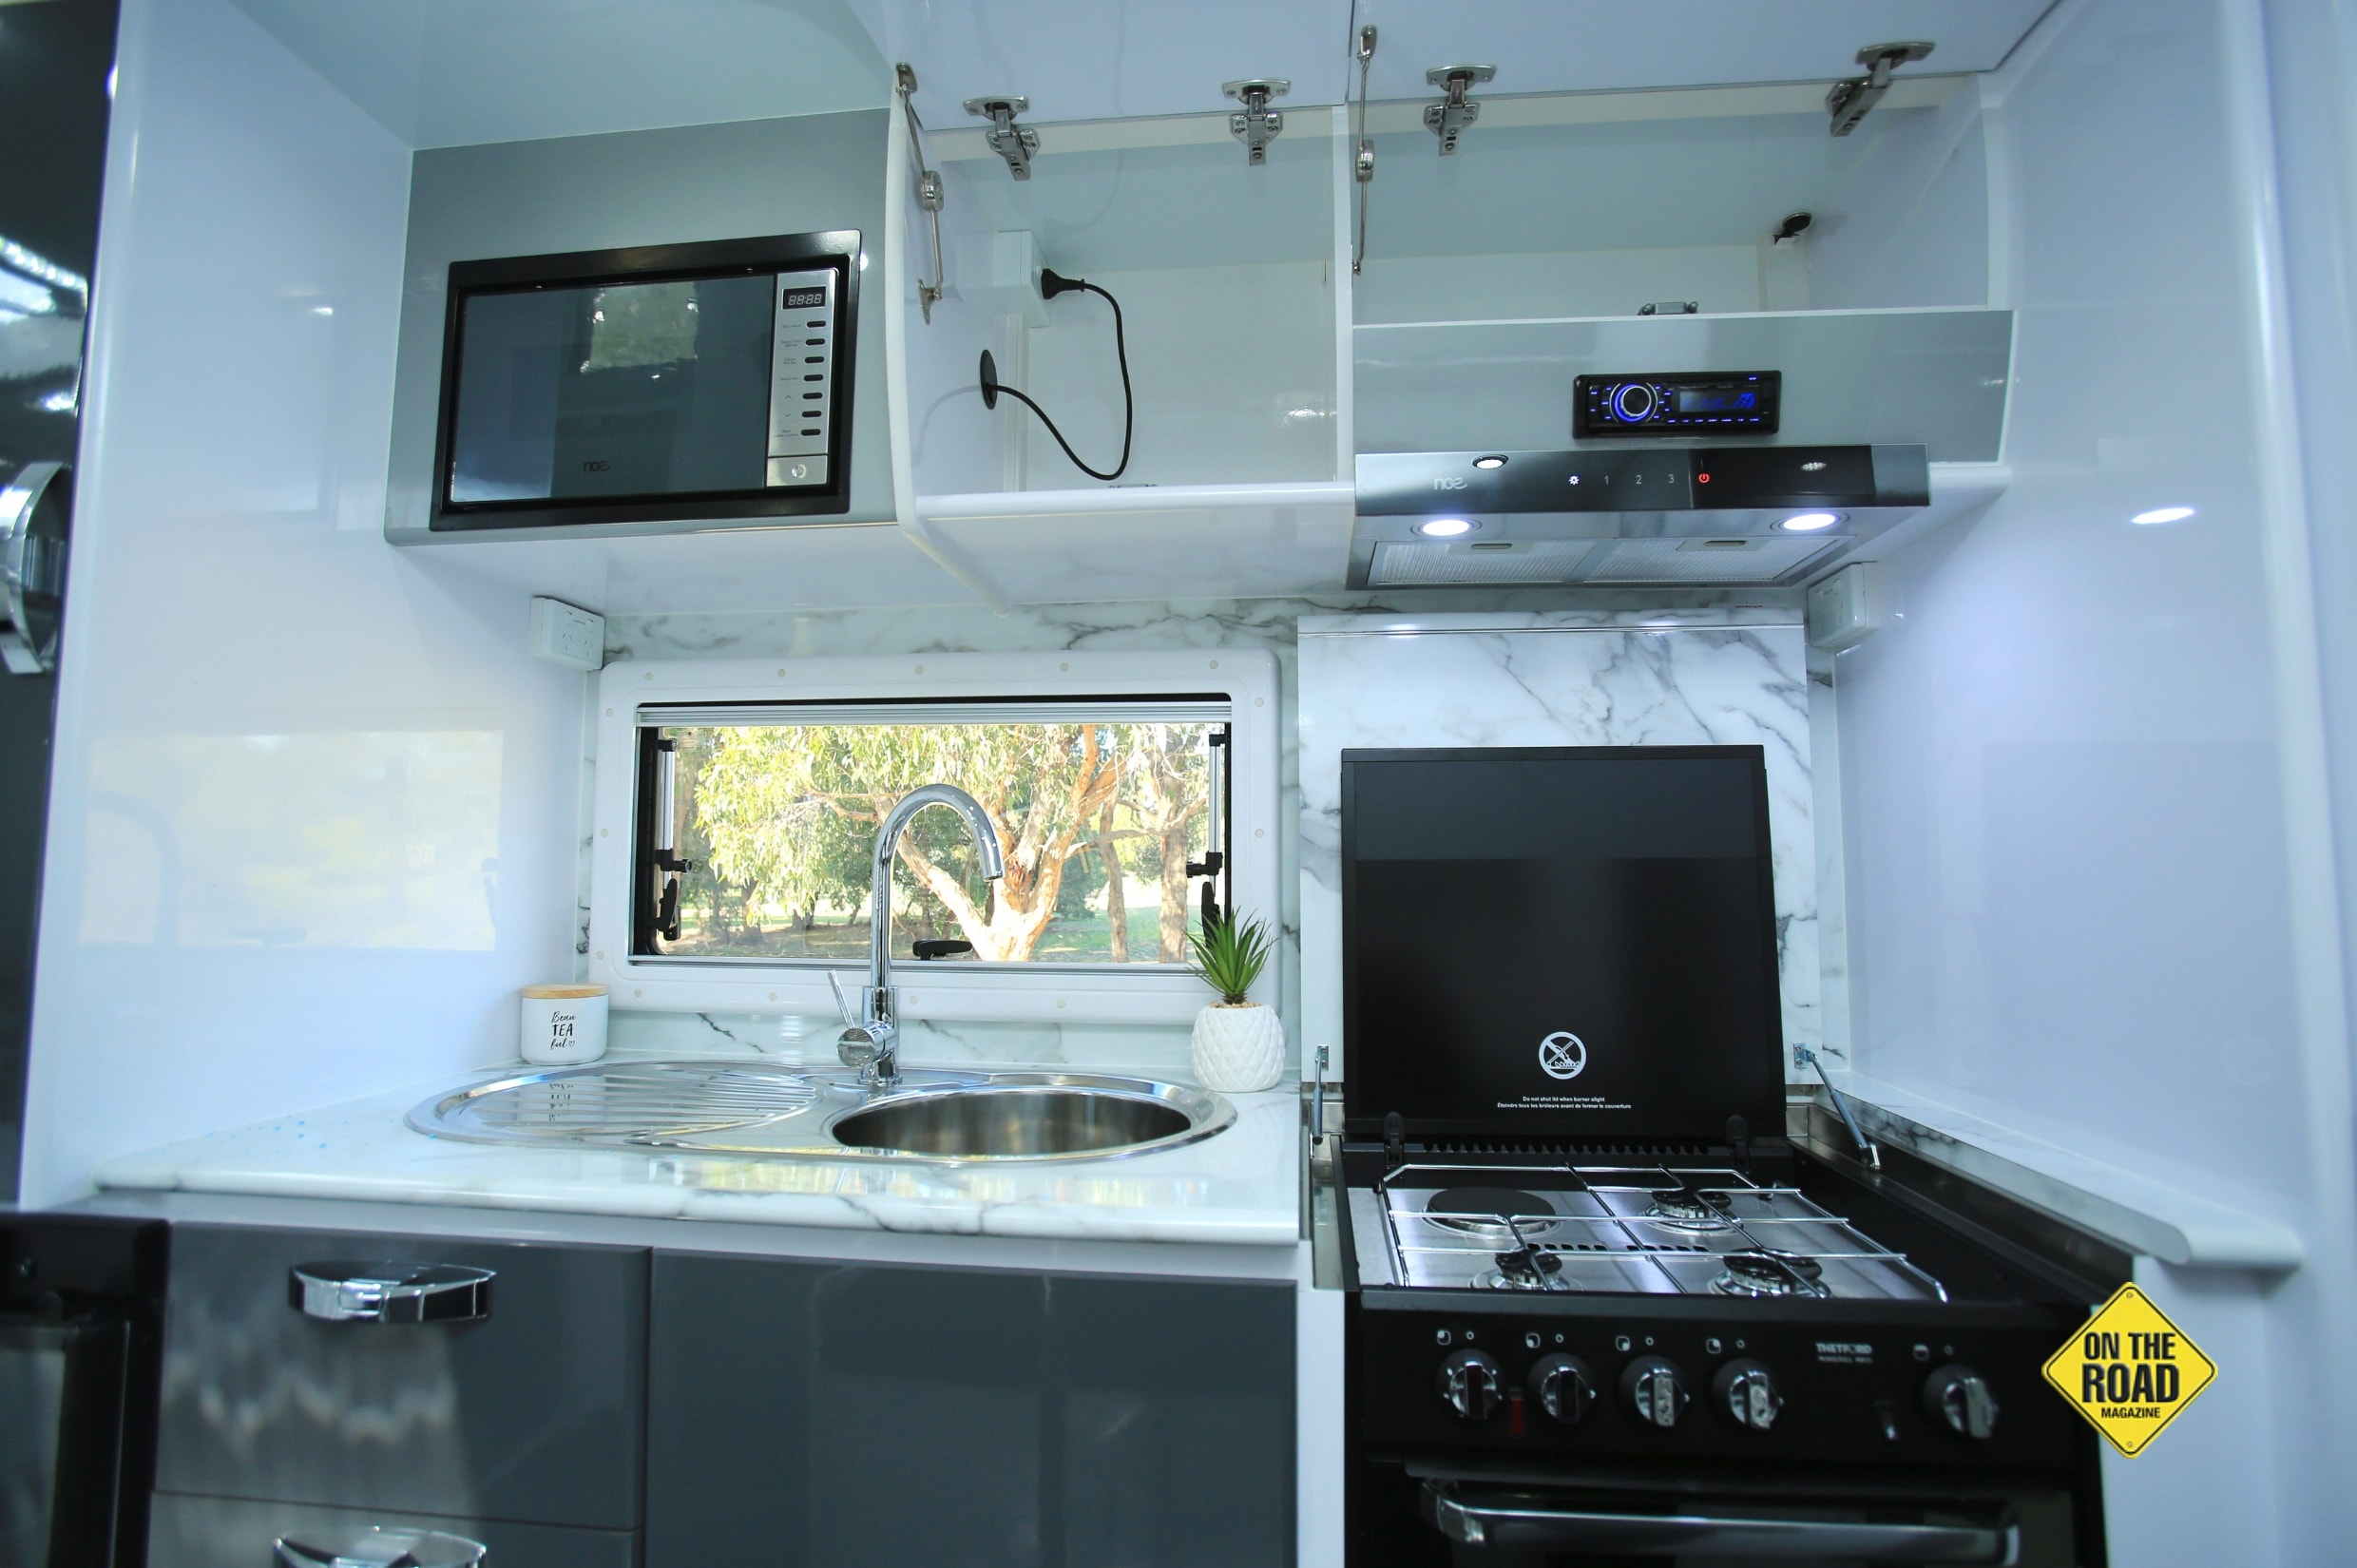 The kitchen has good quality appliances for great meal preparation.